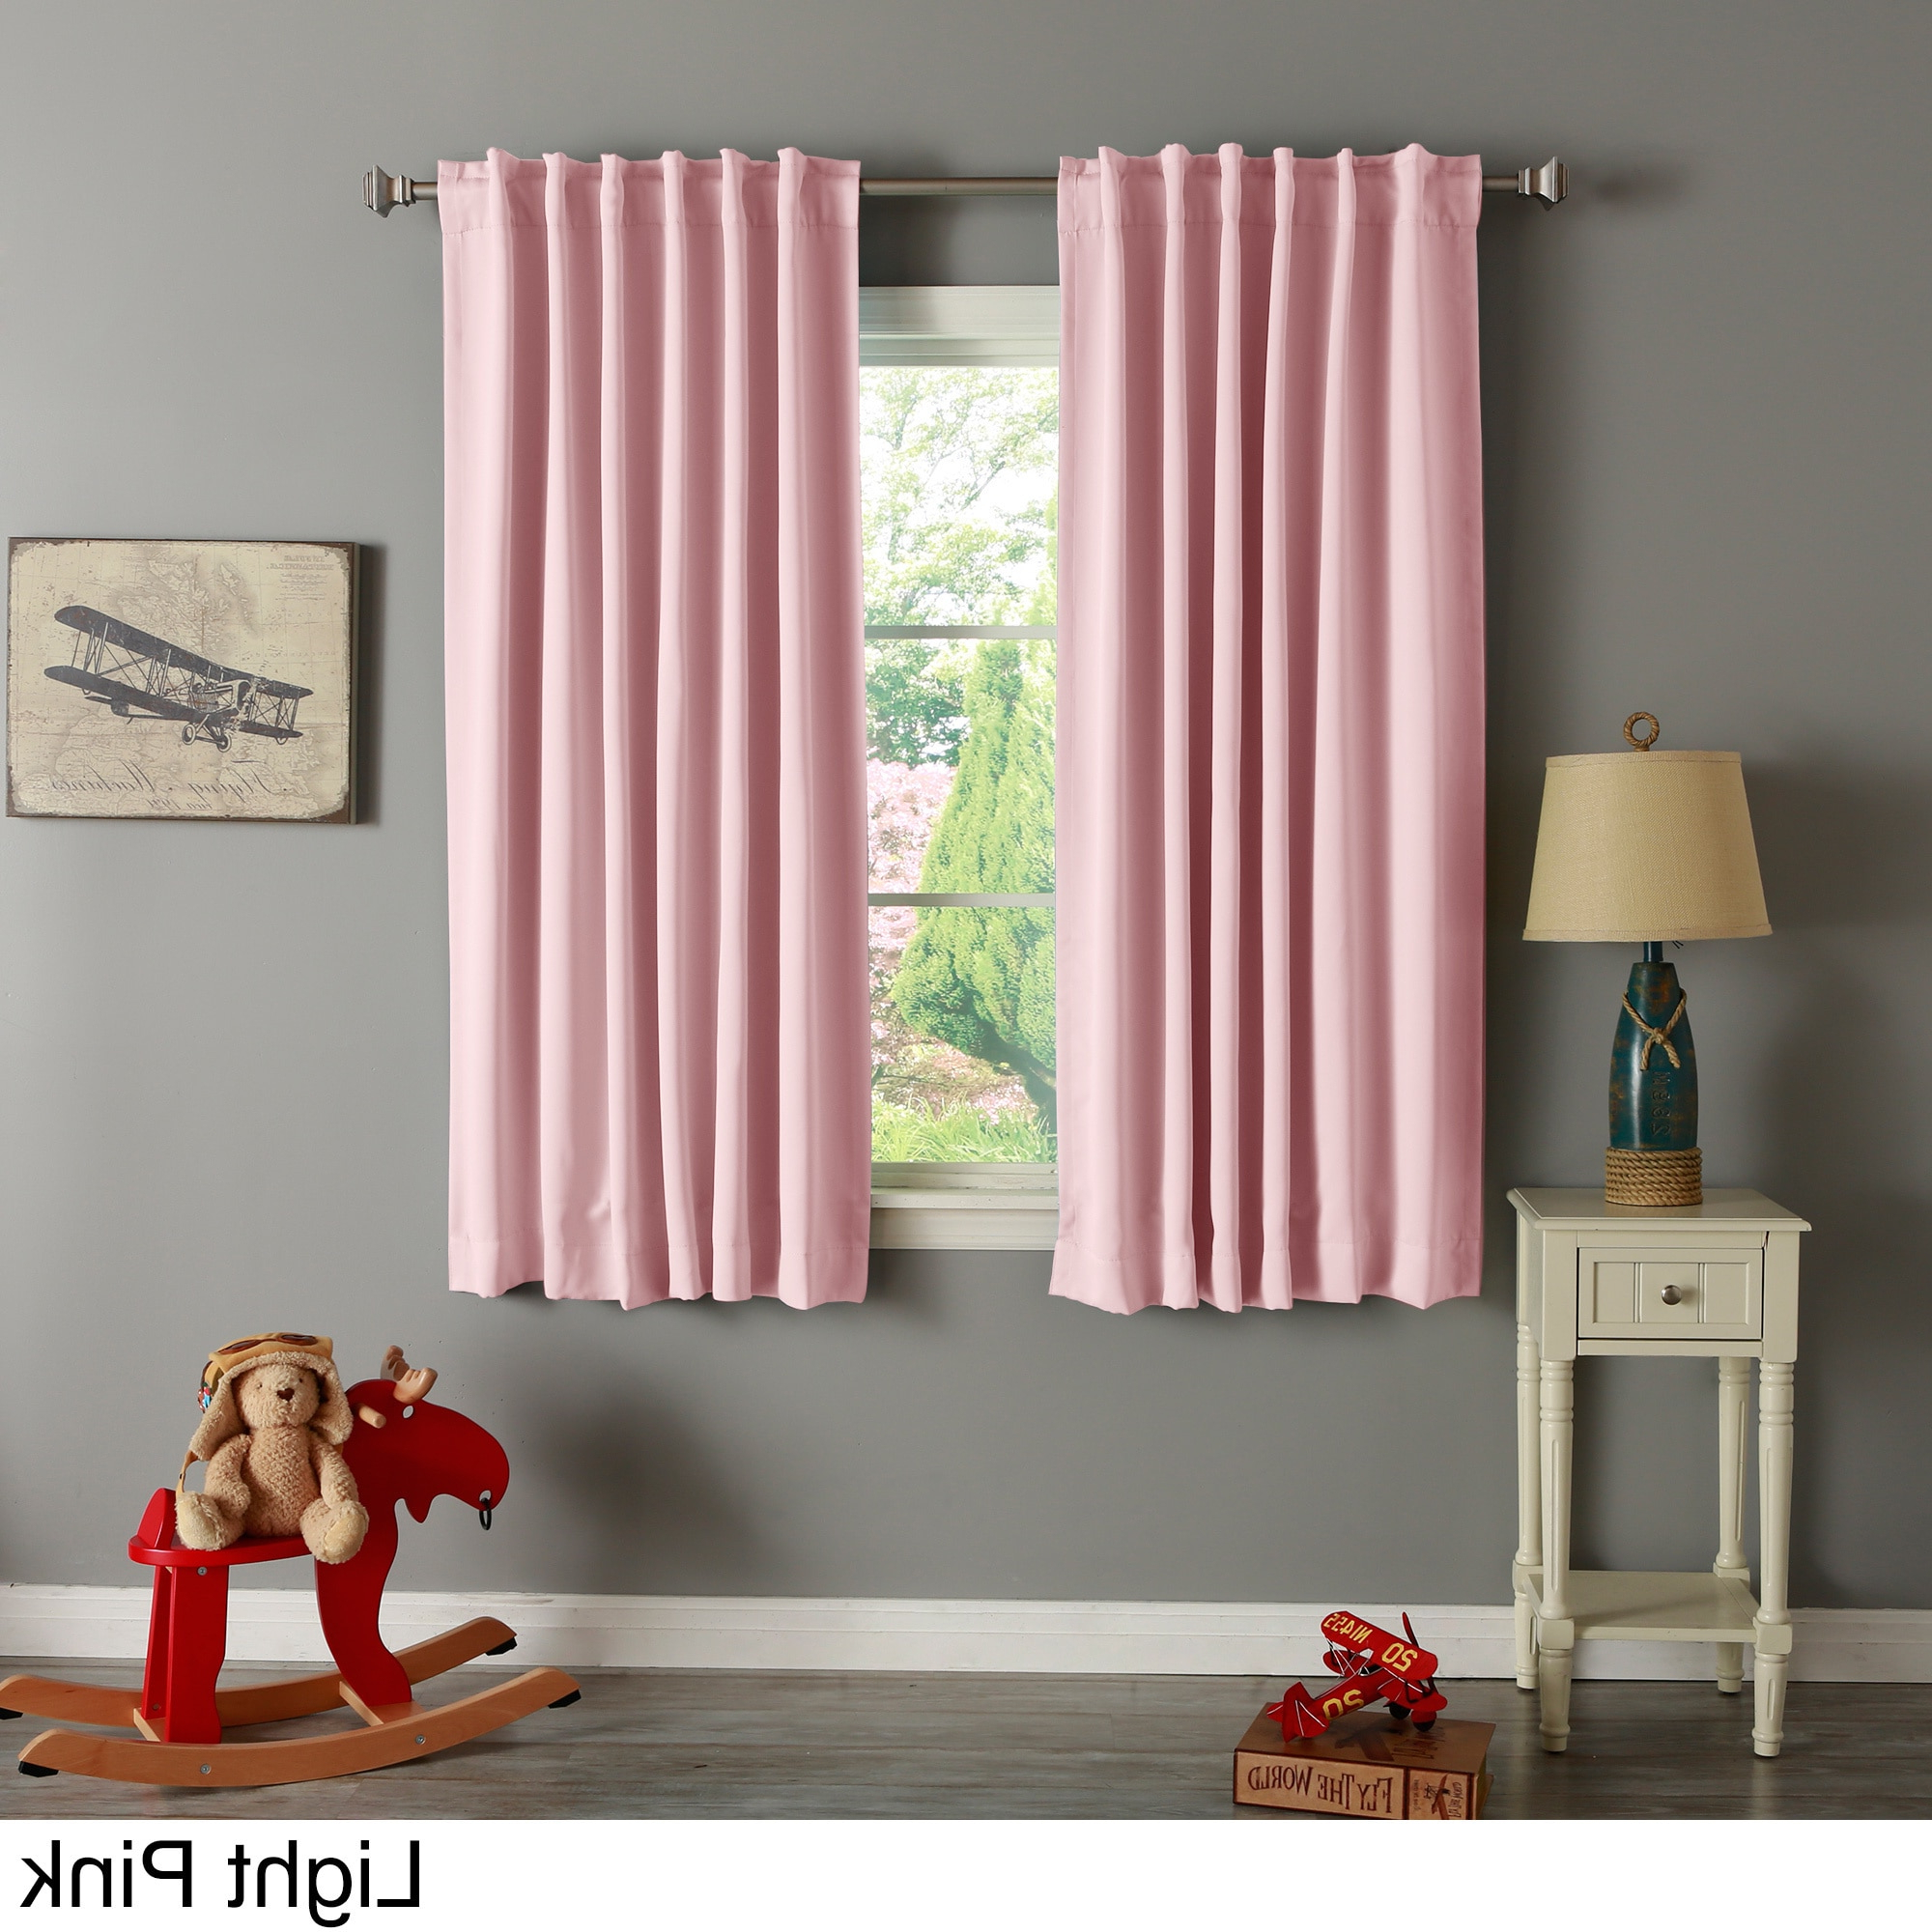 Aurora Home Solid Insulated Thermal Blackout 63 Inch Curtain Intended For Best And Newest Solid Insulated Thermal Blackout Curtain Panel Pairs (View 12 of 20)